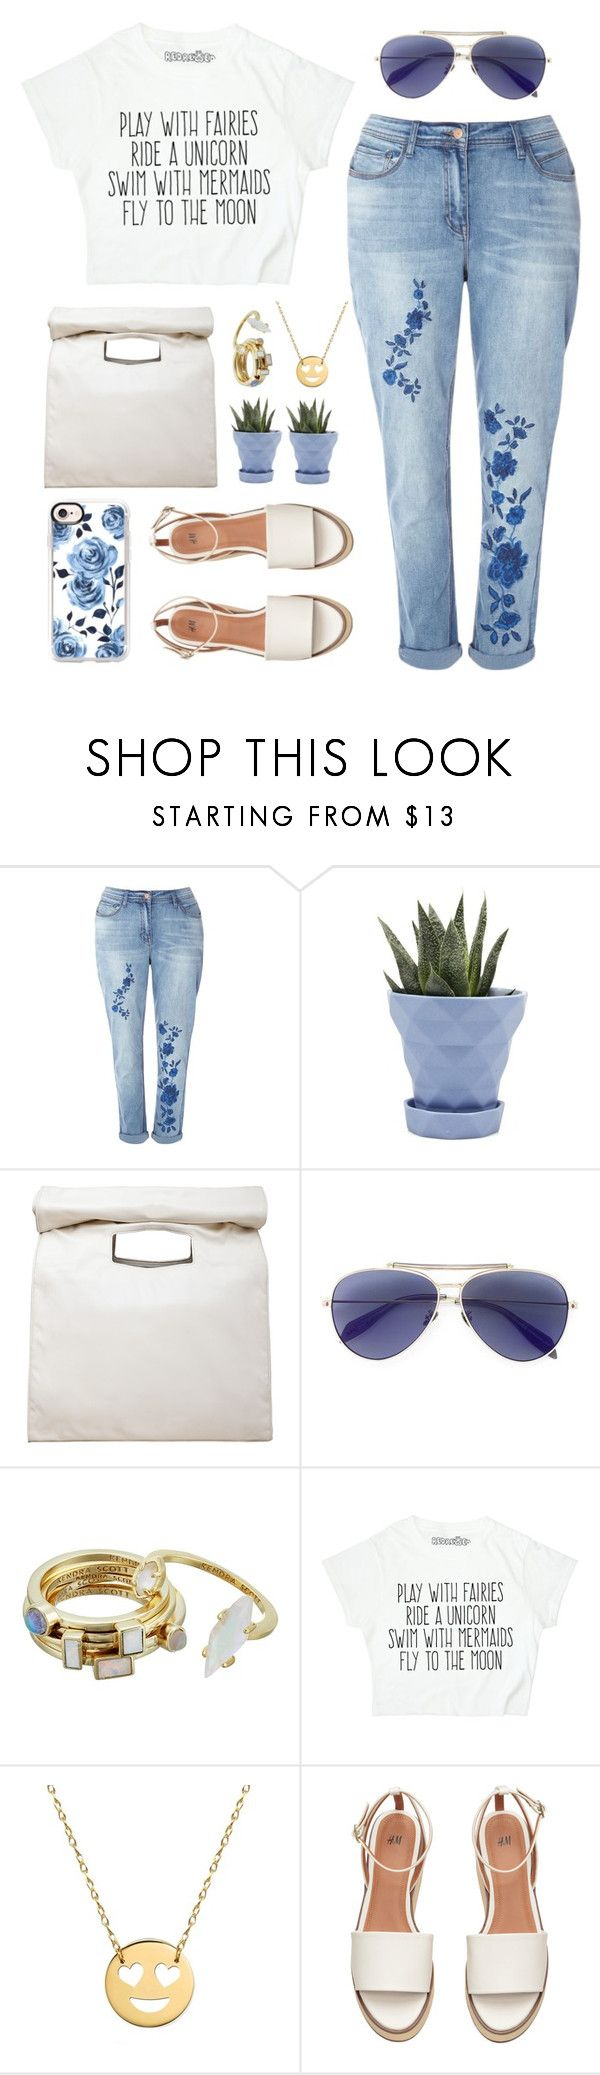 """Flowers"" by lanagur on Polyvore featuring мода, Chive, Limi Feu, Alexander McQueen, Kendra Scott, Jane Basch и Casetify"